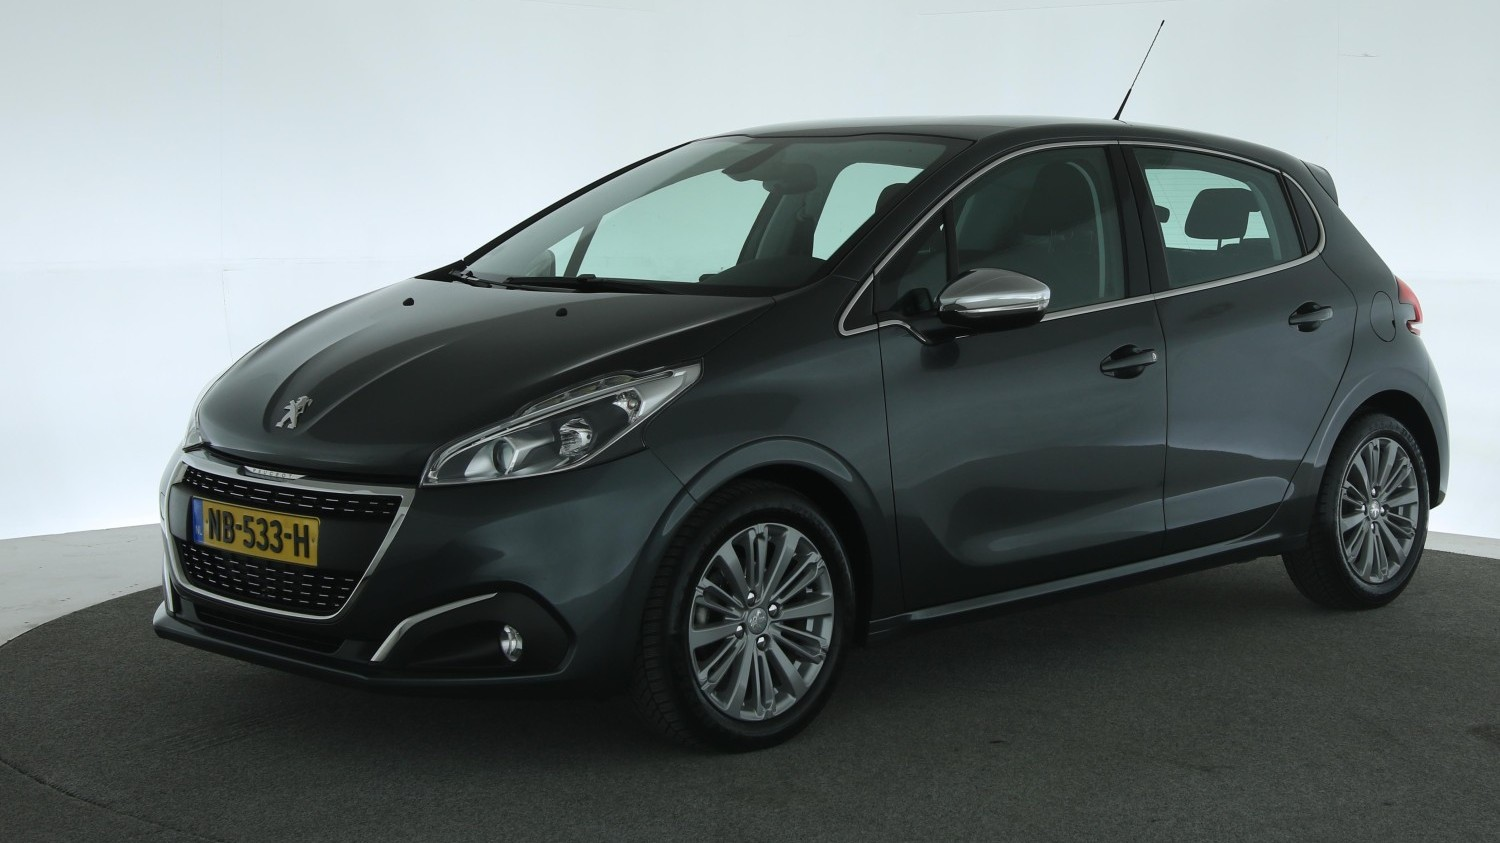 Peugeot 208 Hatchback 2017 NB-533-H 1